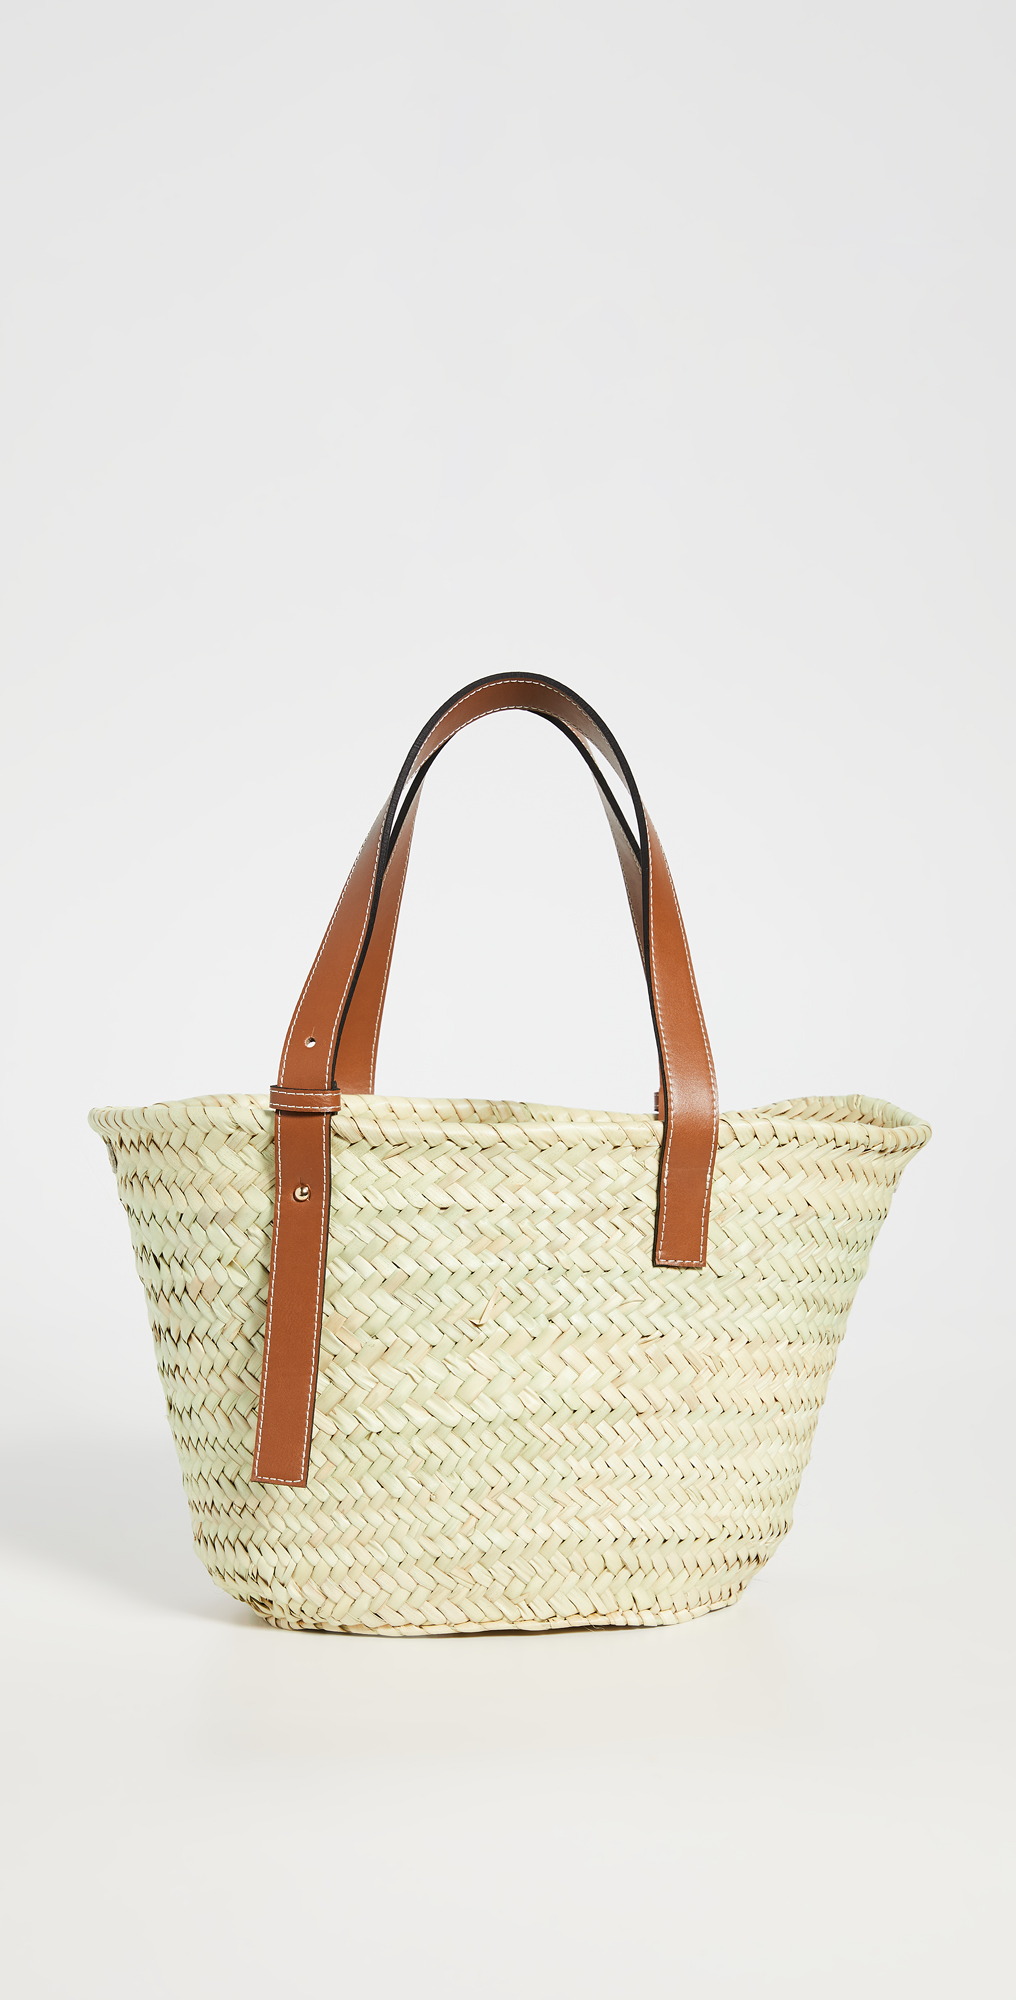 Details about  /Deliah/'s Girls Beach Pool Tote Bag with Sunglasses Cruise, Beach, Pool